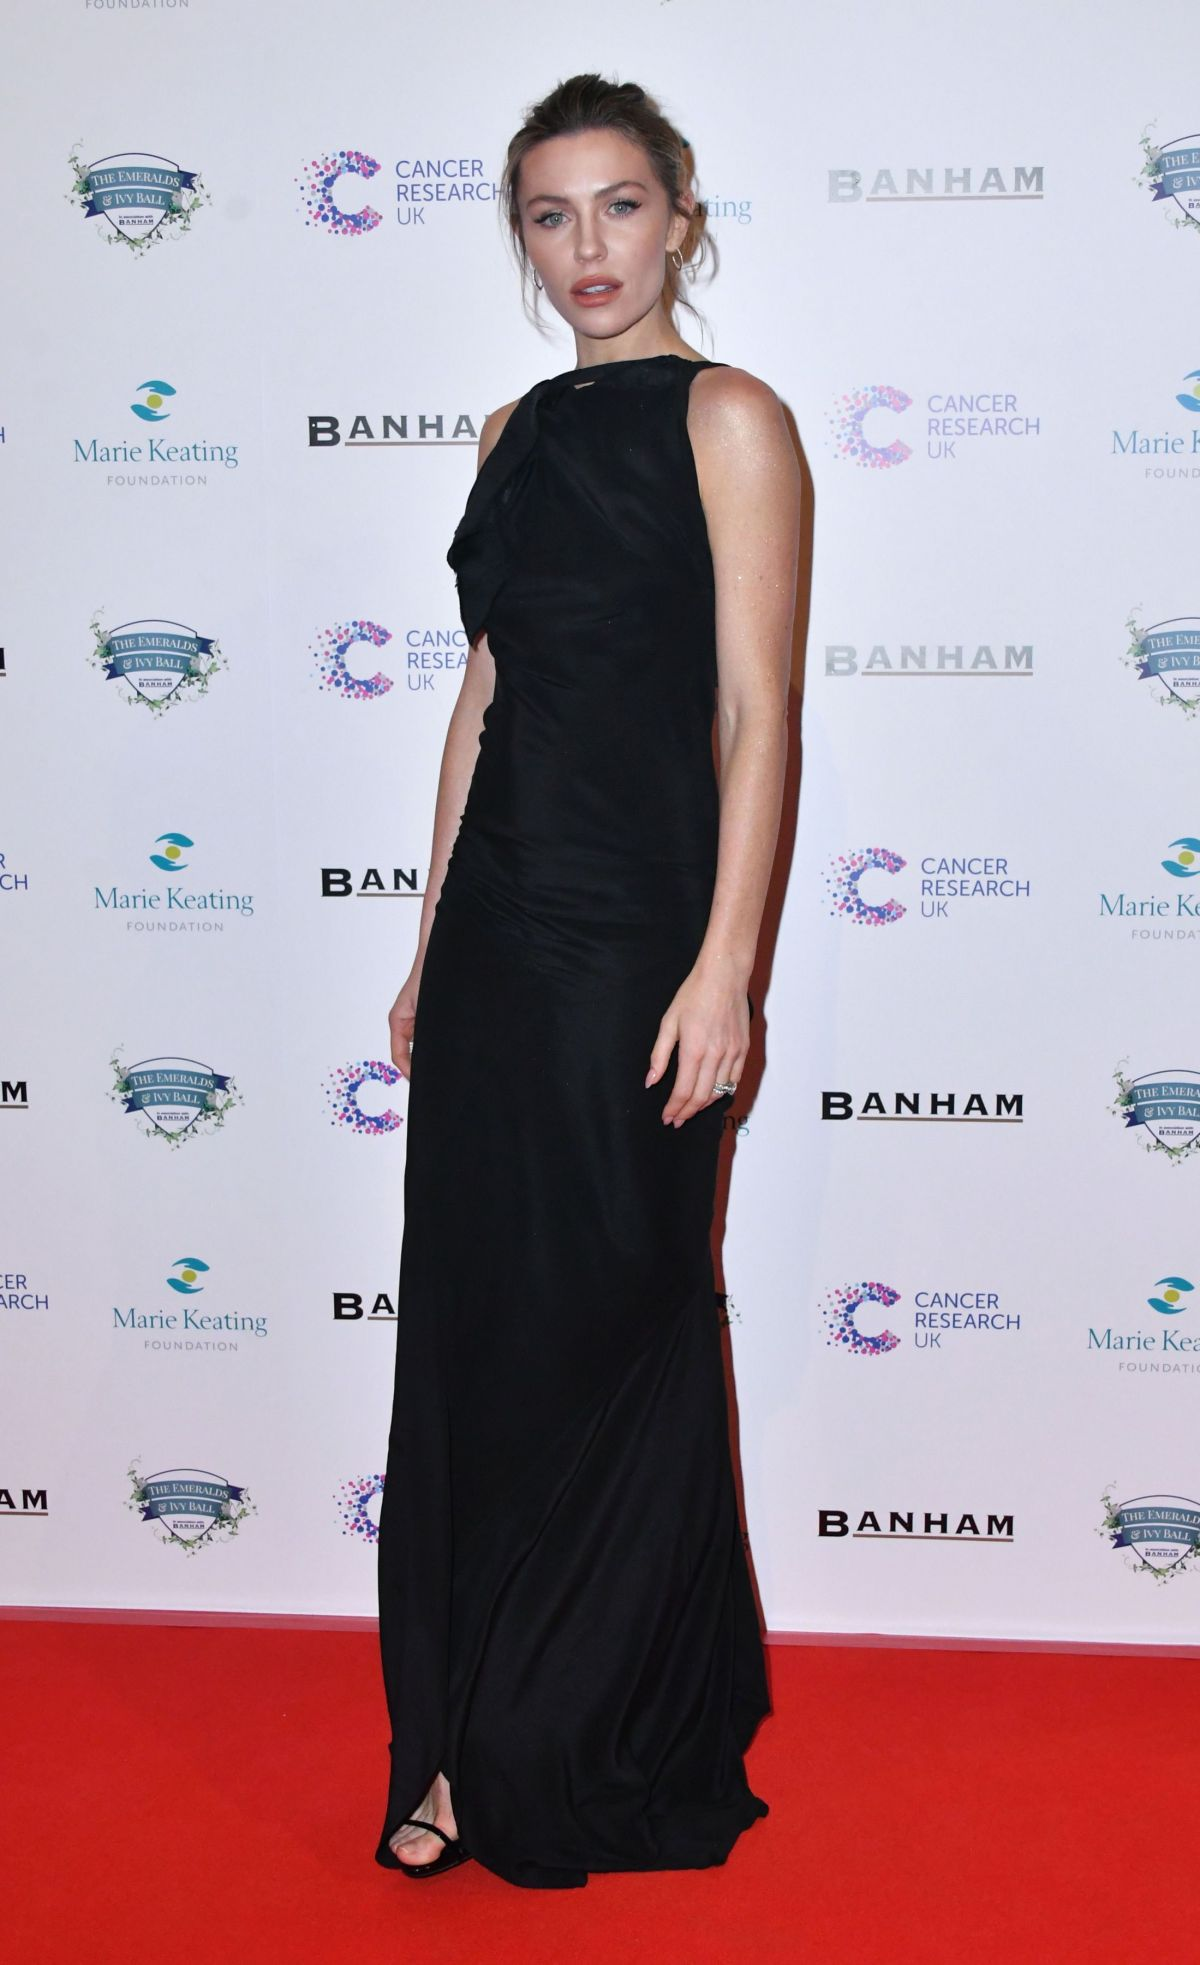 ABIGAIL ABBEY CLANCY at Emeralds and Ivy Ball in London 02/25/2017